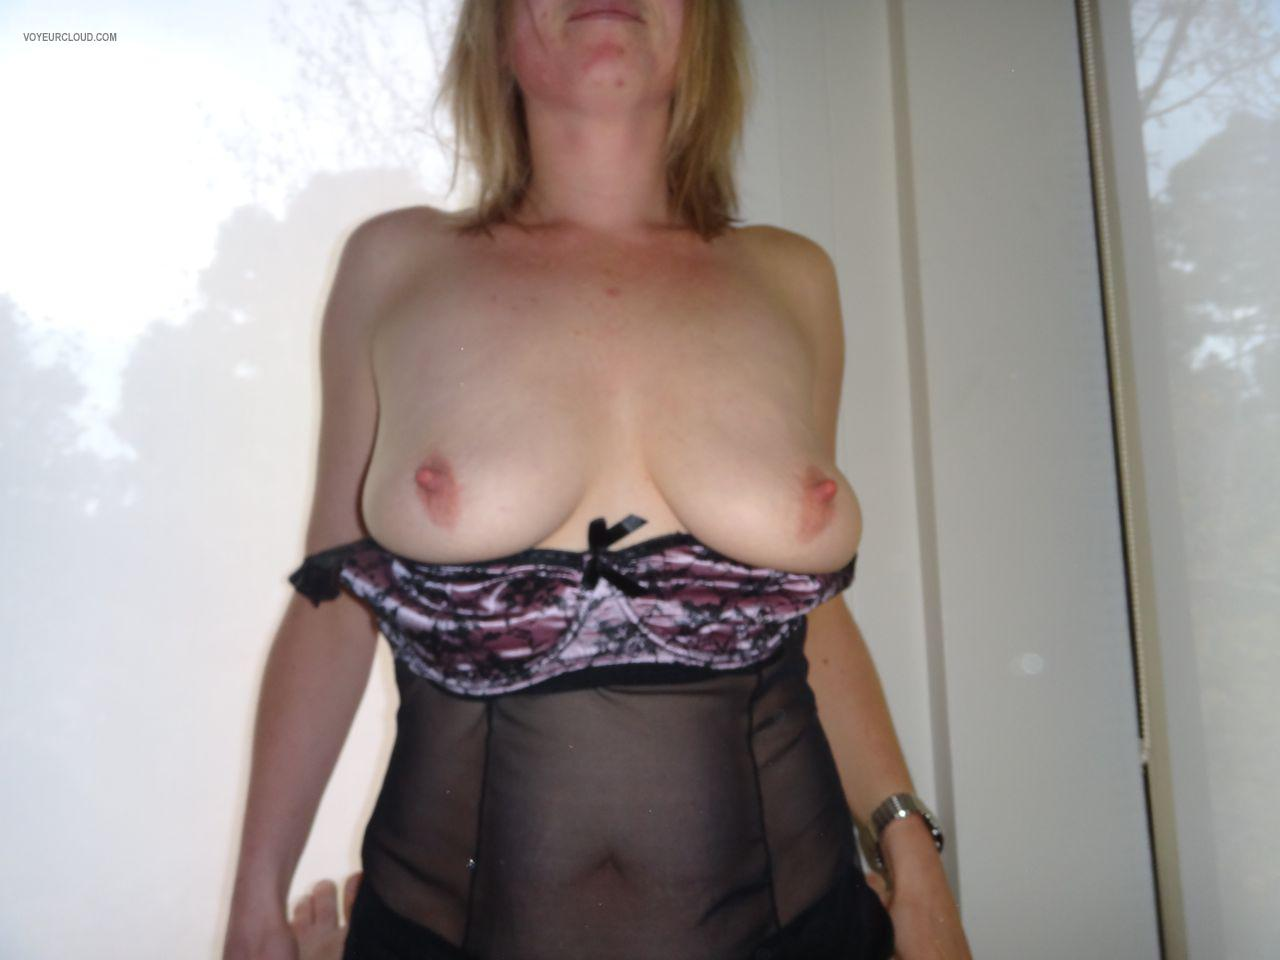 Tit Flash: My Friend's Big Tits - Wife Or Mistress? from United States